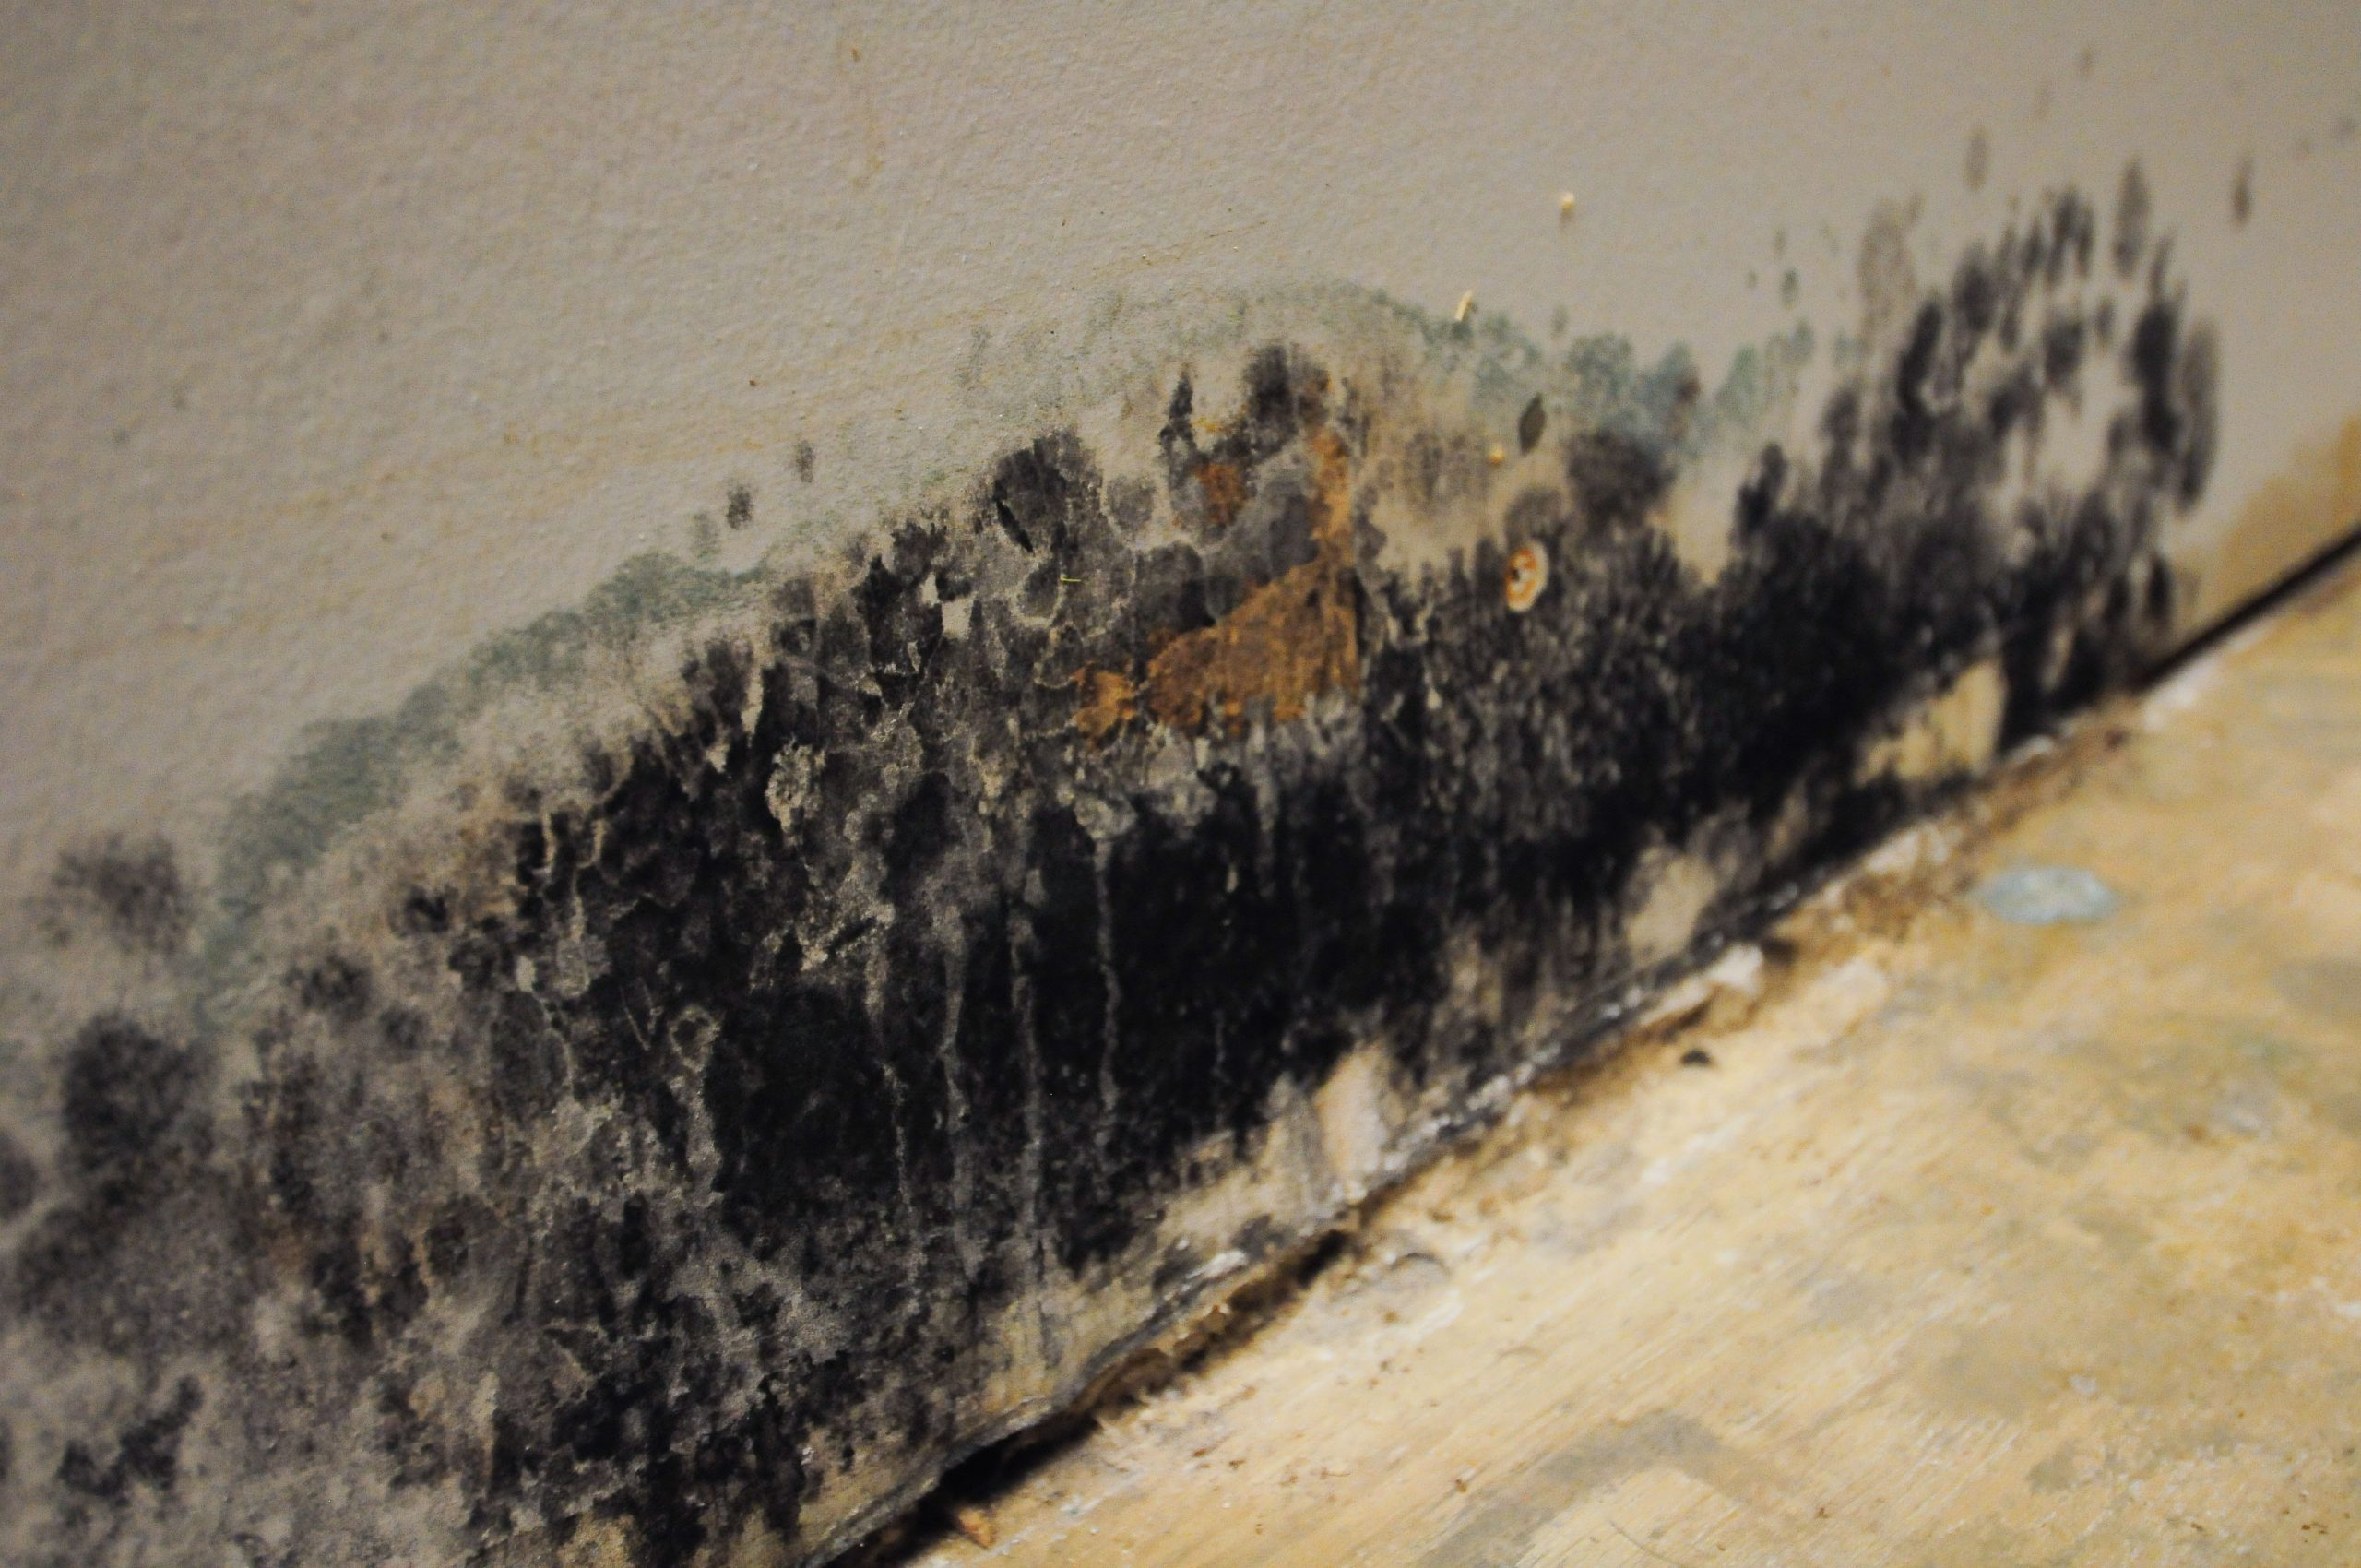 How do You Prevent Black Mold?